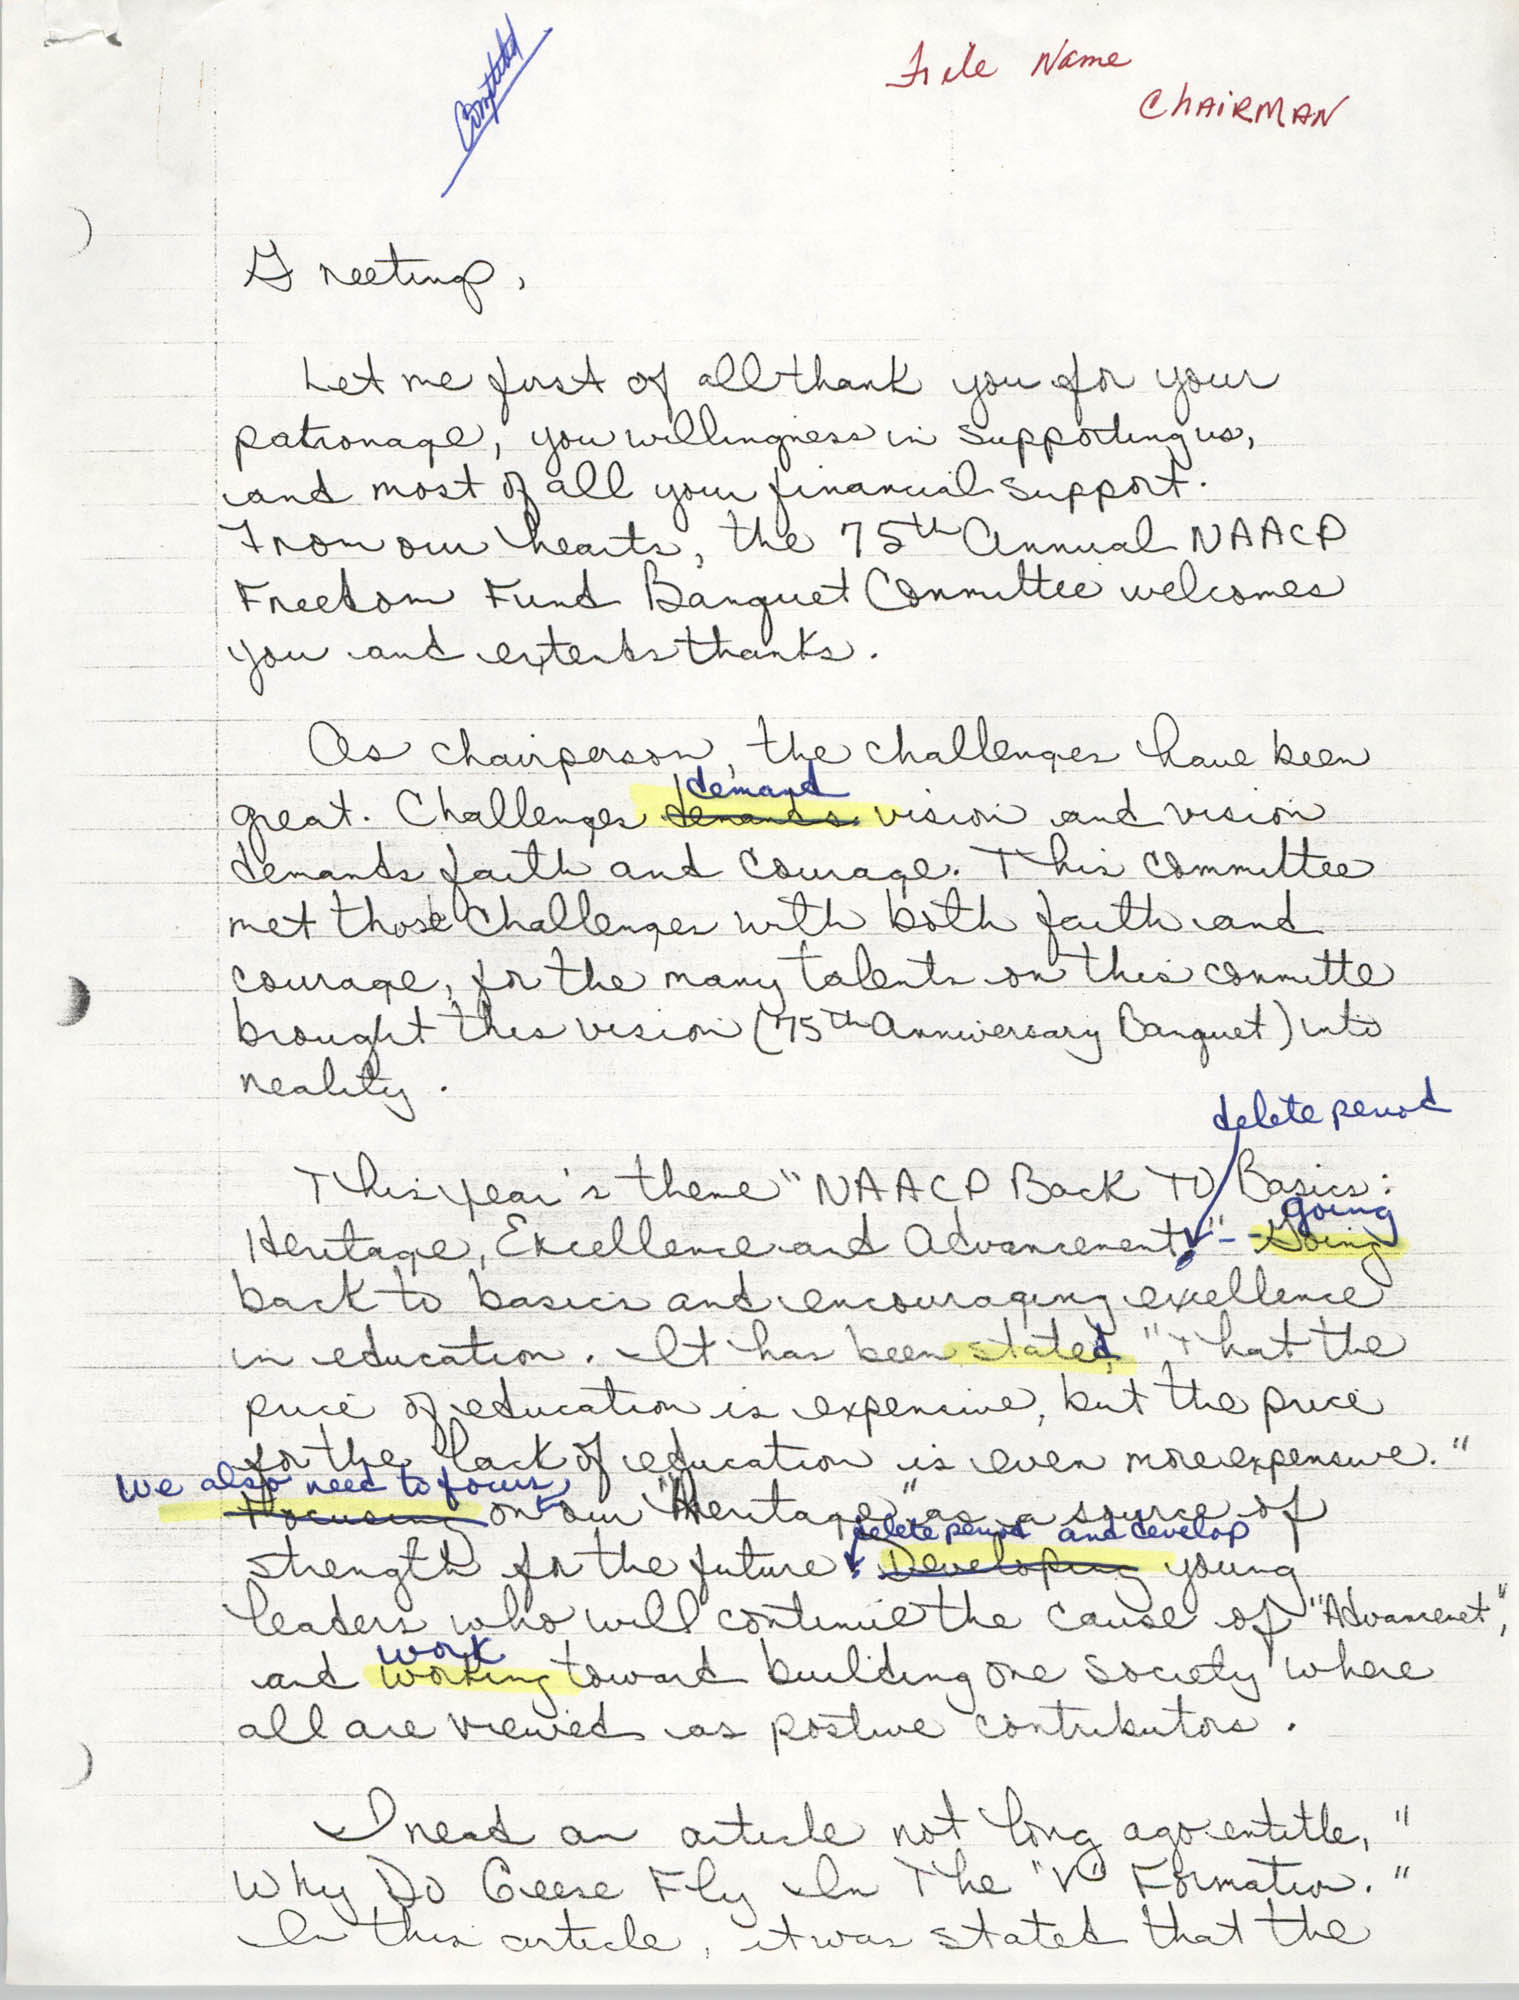 Draft, Handwritten Speech, 1991 Freedom Fund Banquet, David Coleman